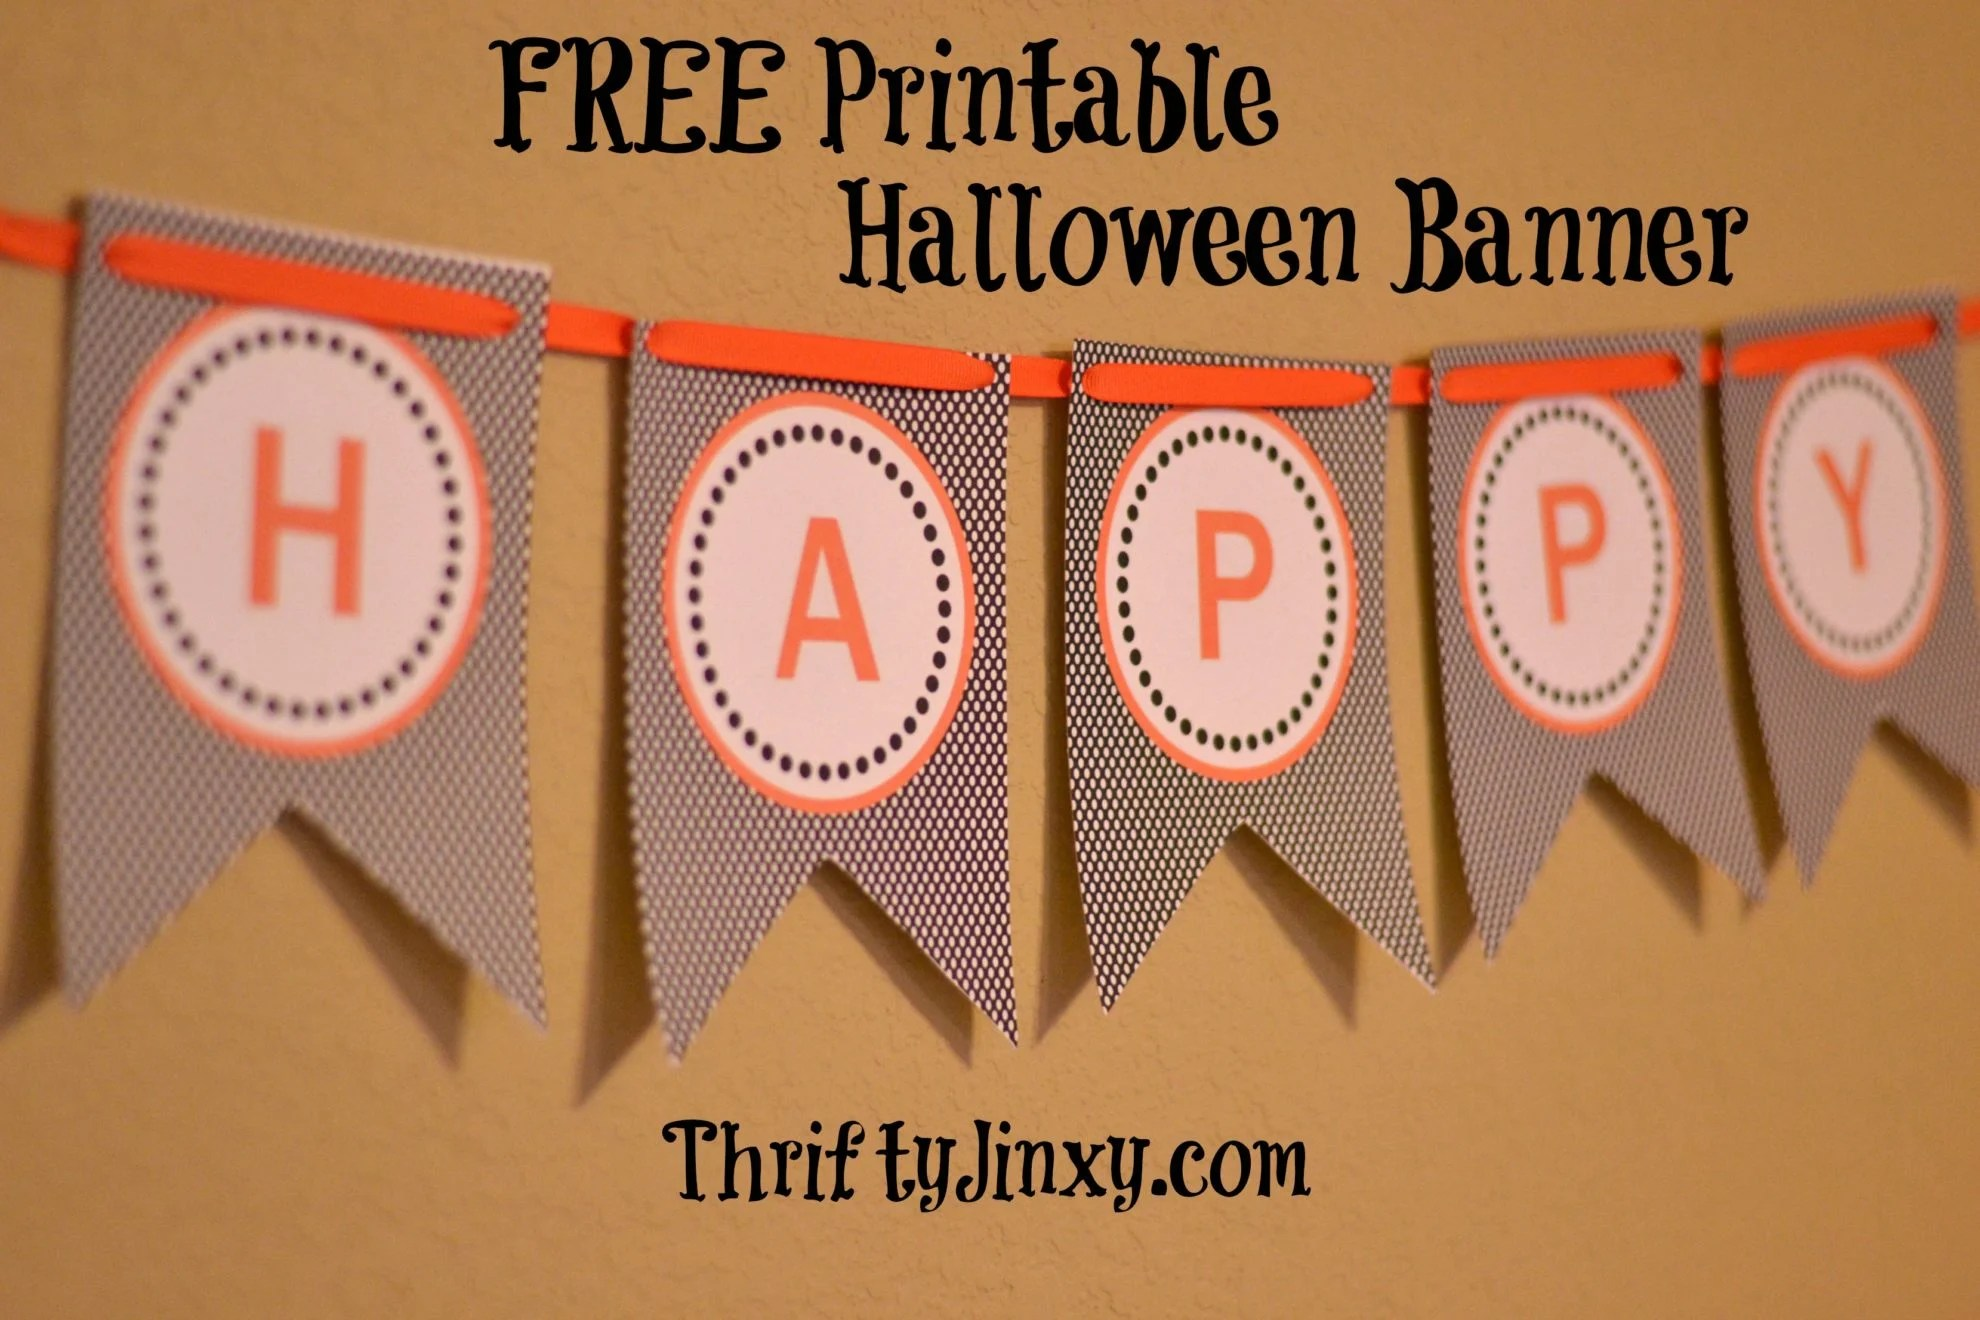 FREE Printable Halloween Banner , Thrifty Jinxy